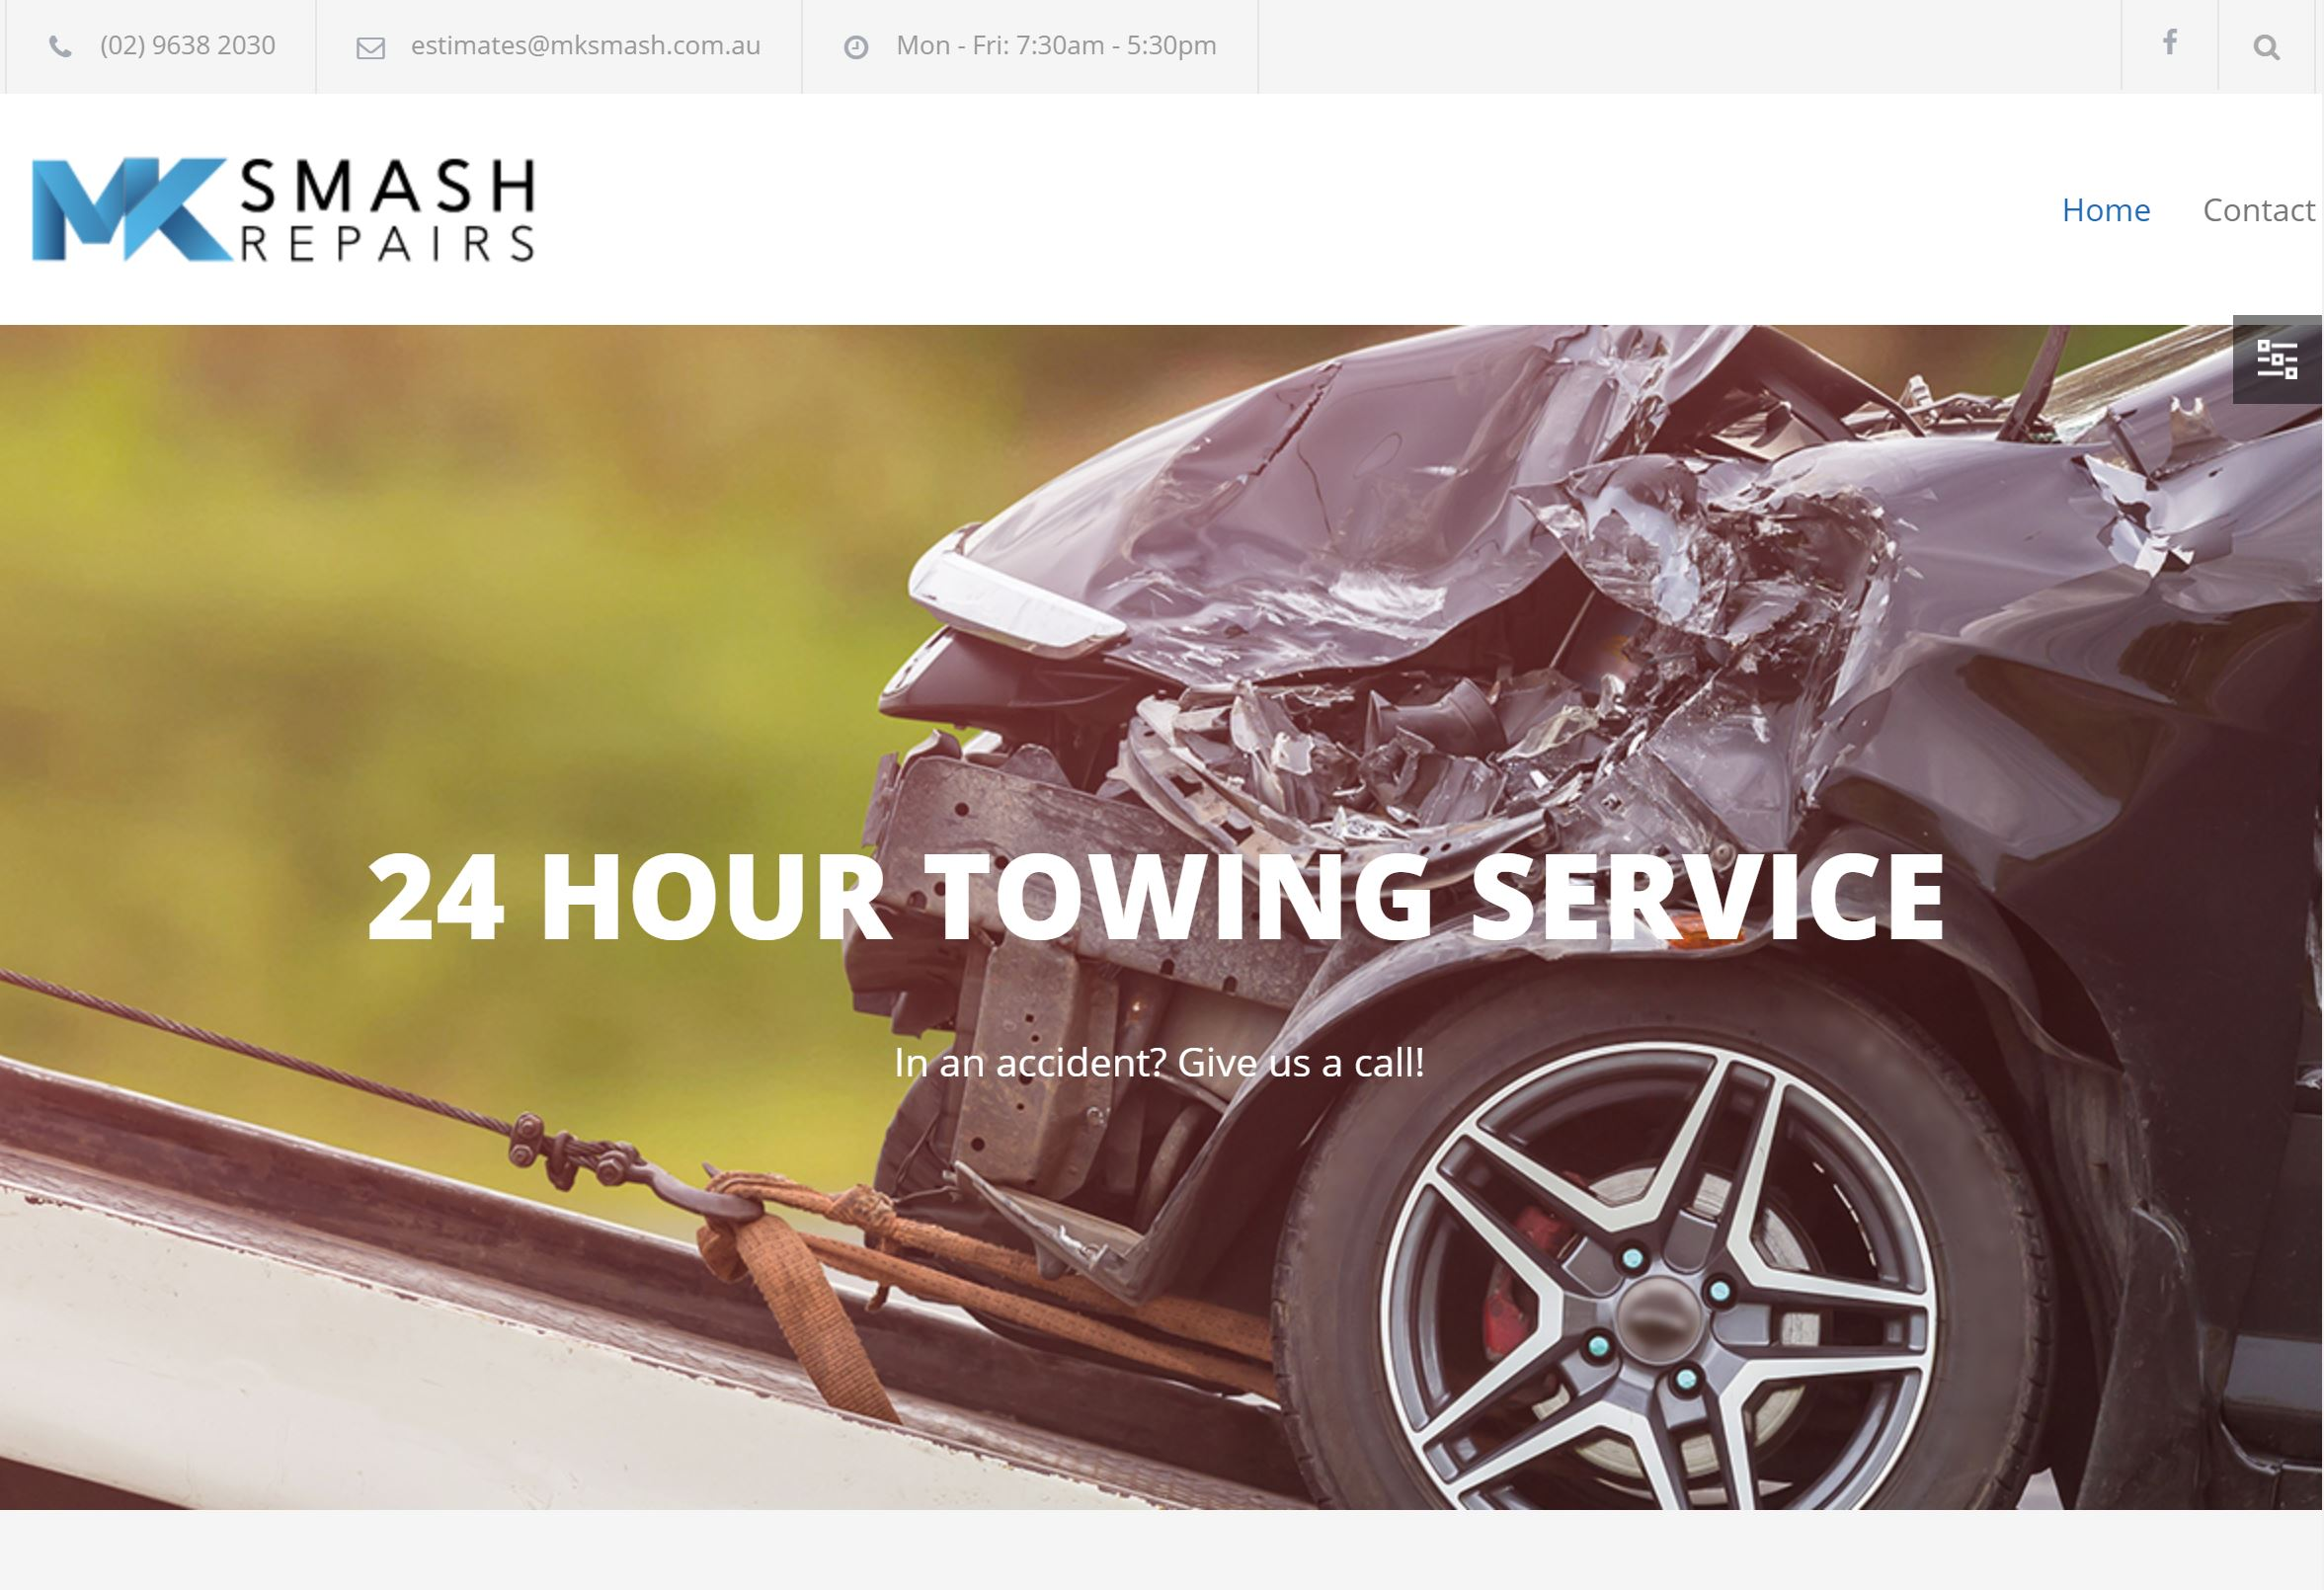 MK Smash Repairs Website Design